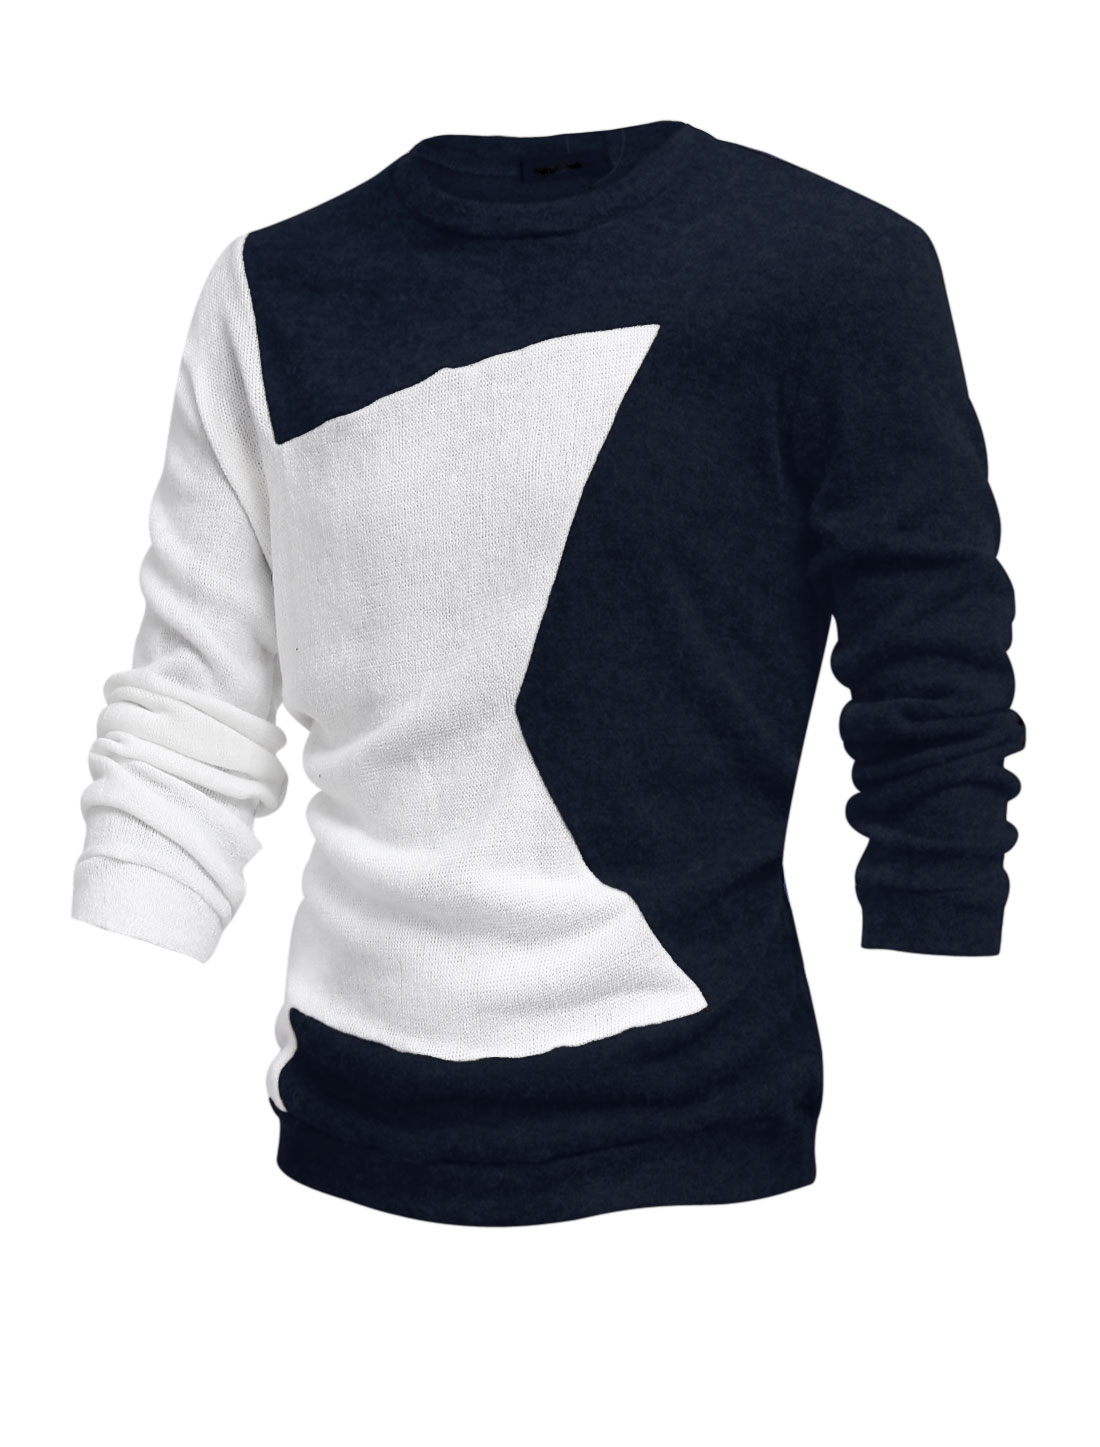 Men Round Neck Stars Pattern Contrast Color Casual Sweater Navy Blue L